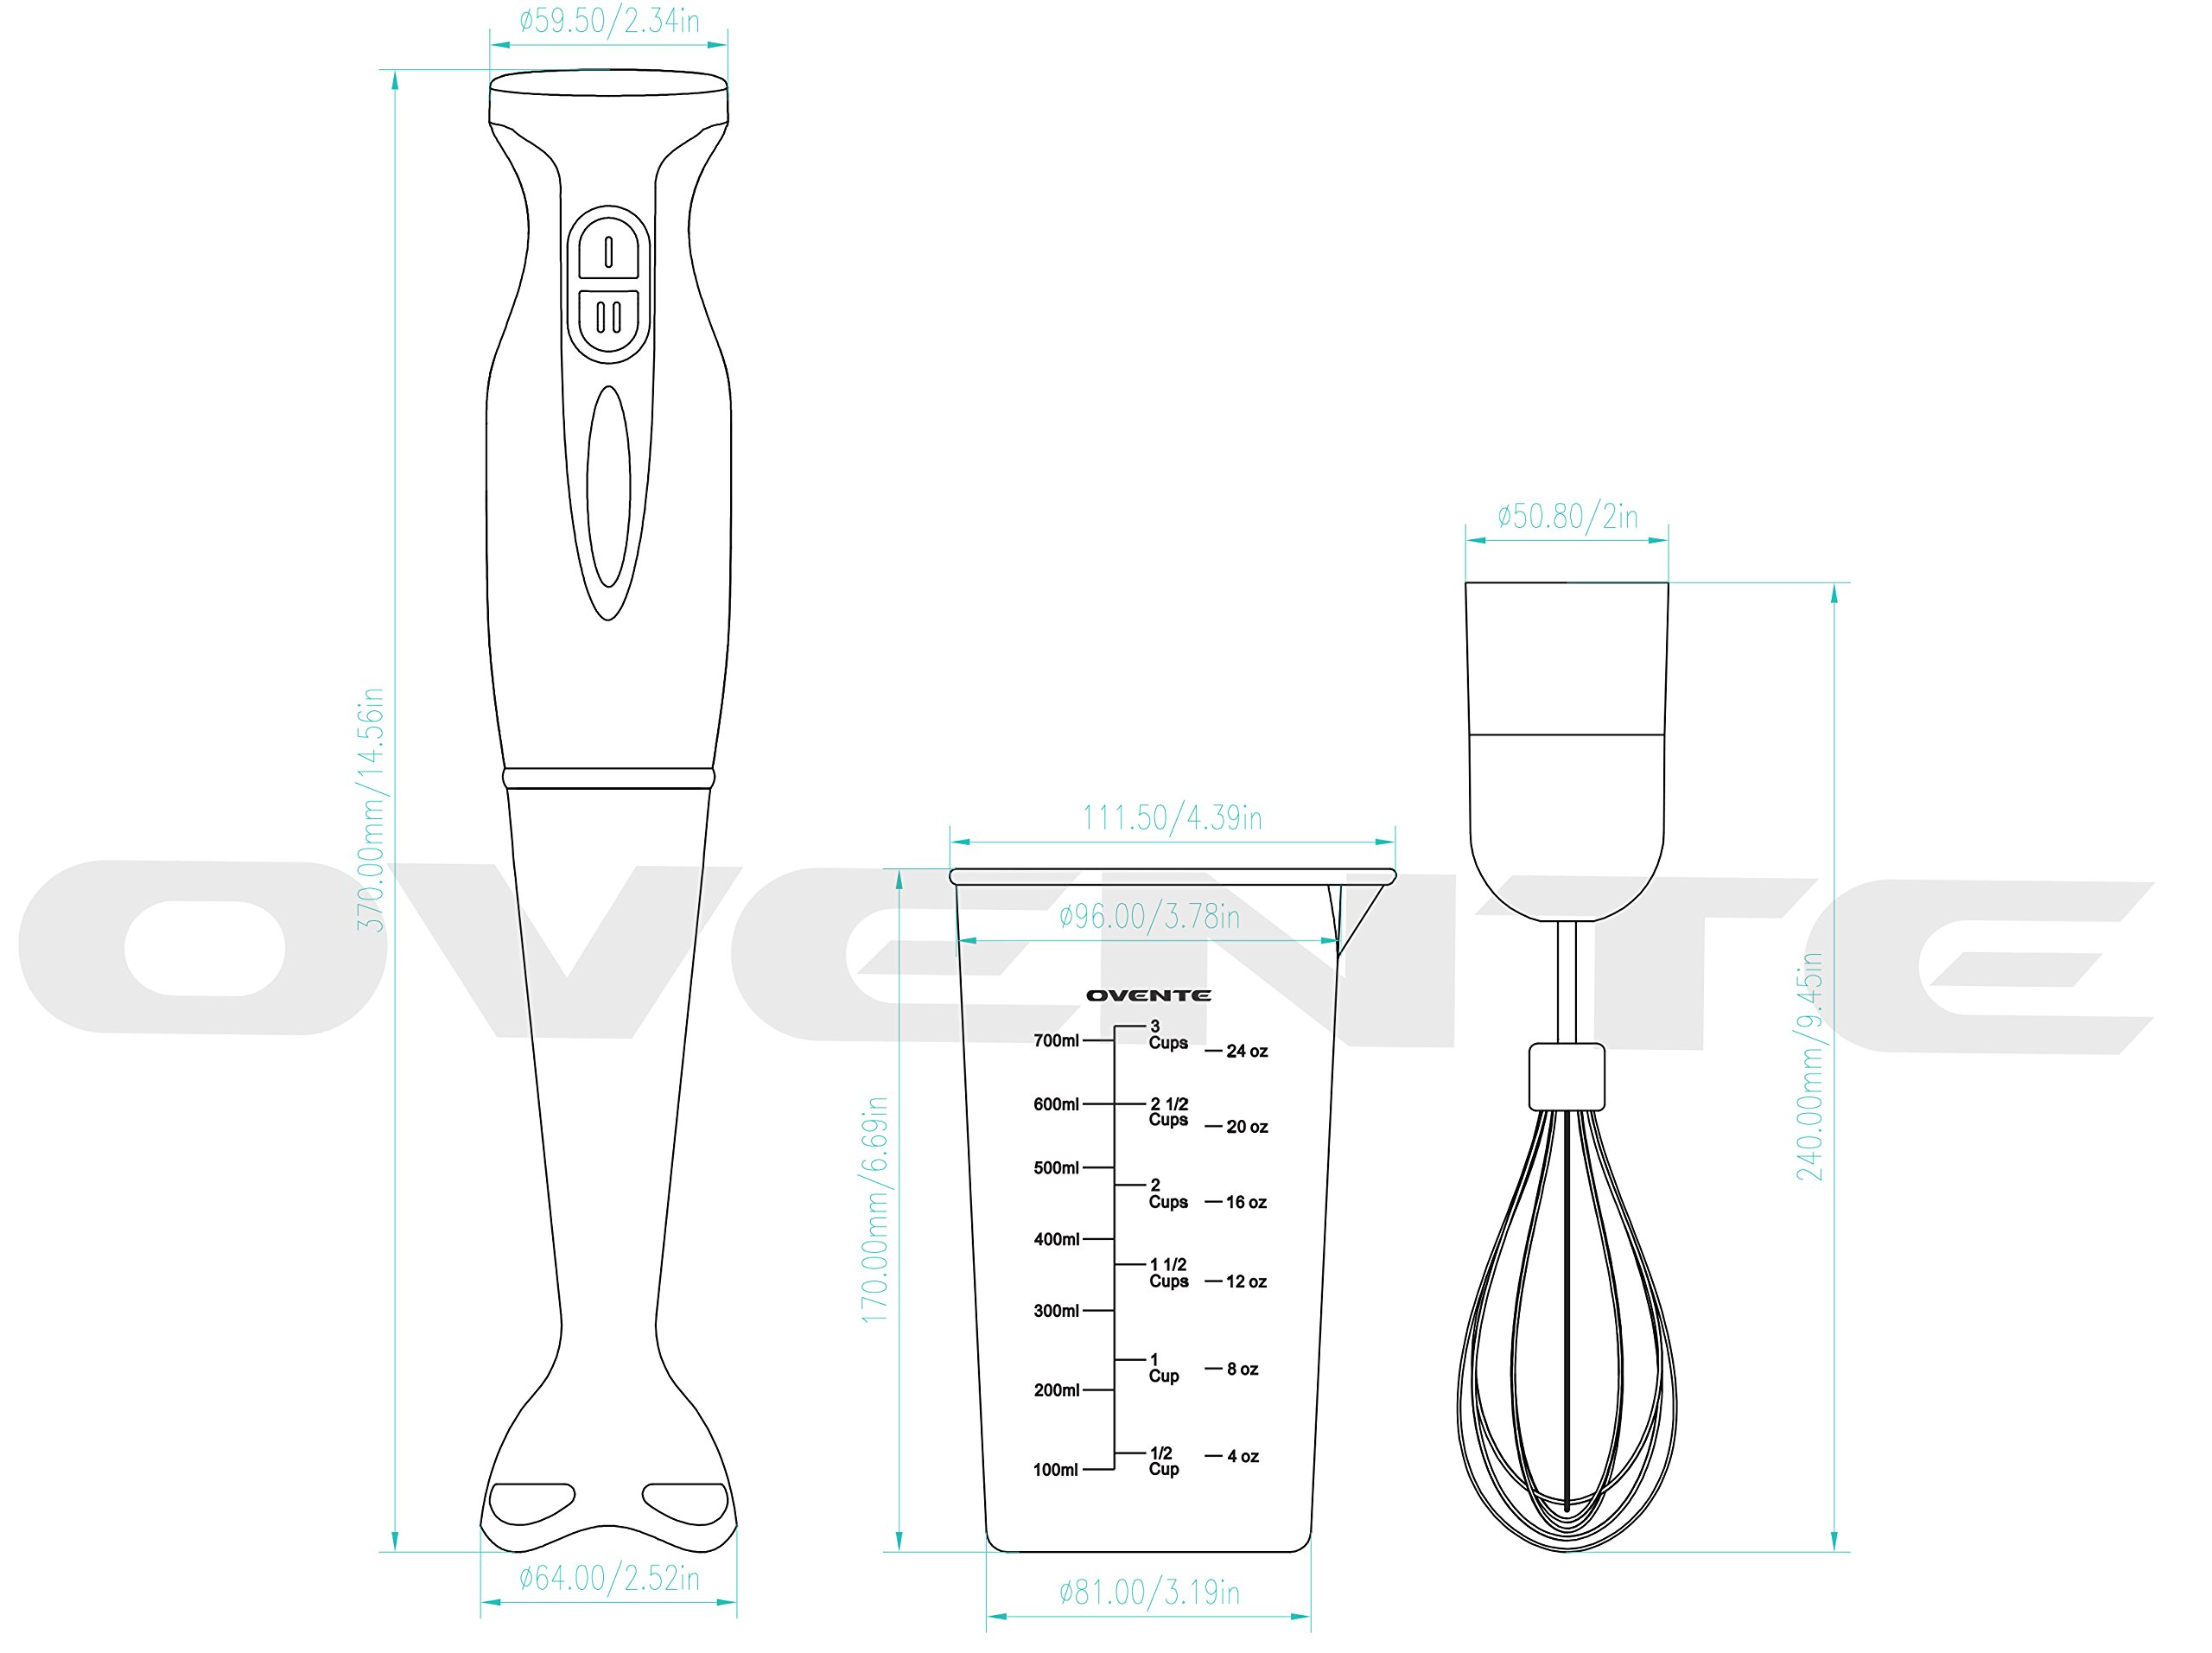 Ovente Multi-Purpose Immersion Hand Blender Set – 300-Watts, 2-Speed – Stainless Steel Blades and Detachable Shaft – Includes Egg Whisk and BPA-Free Beaker (24 oz) – Red (HS583R)